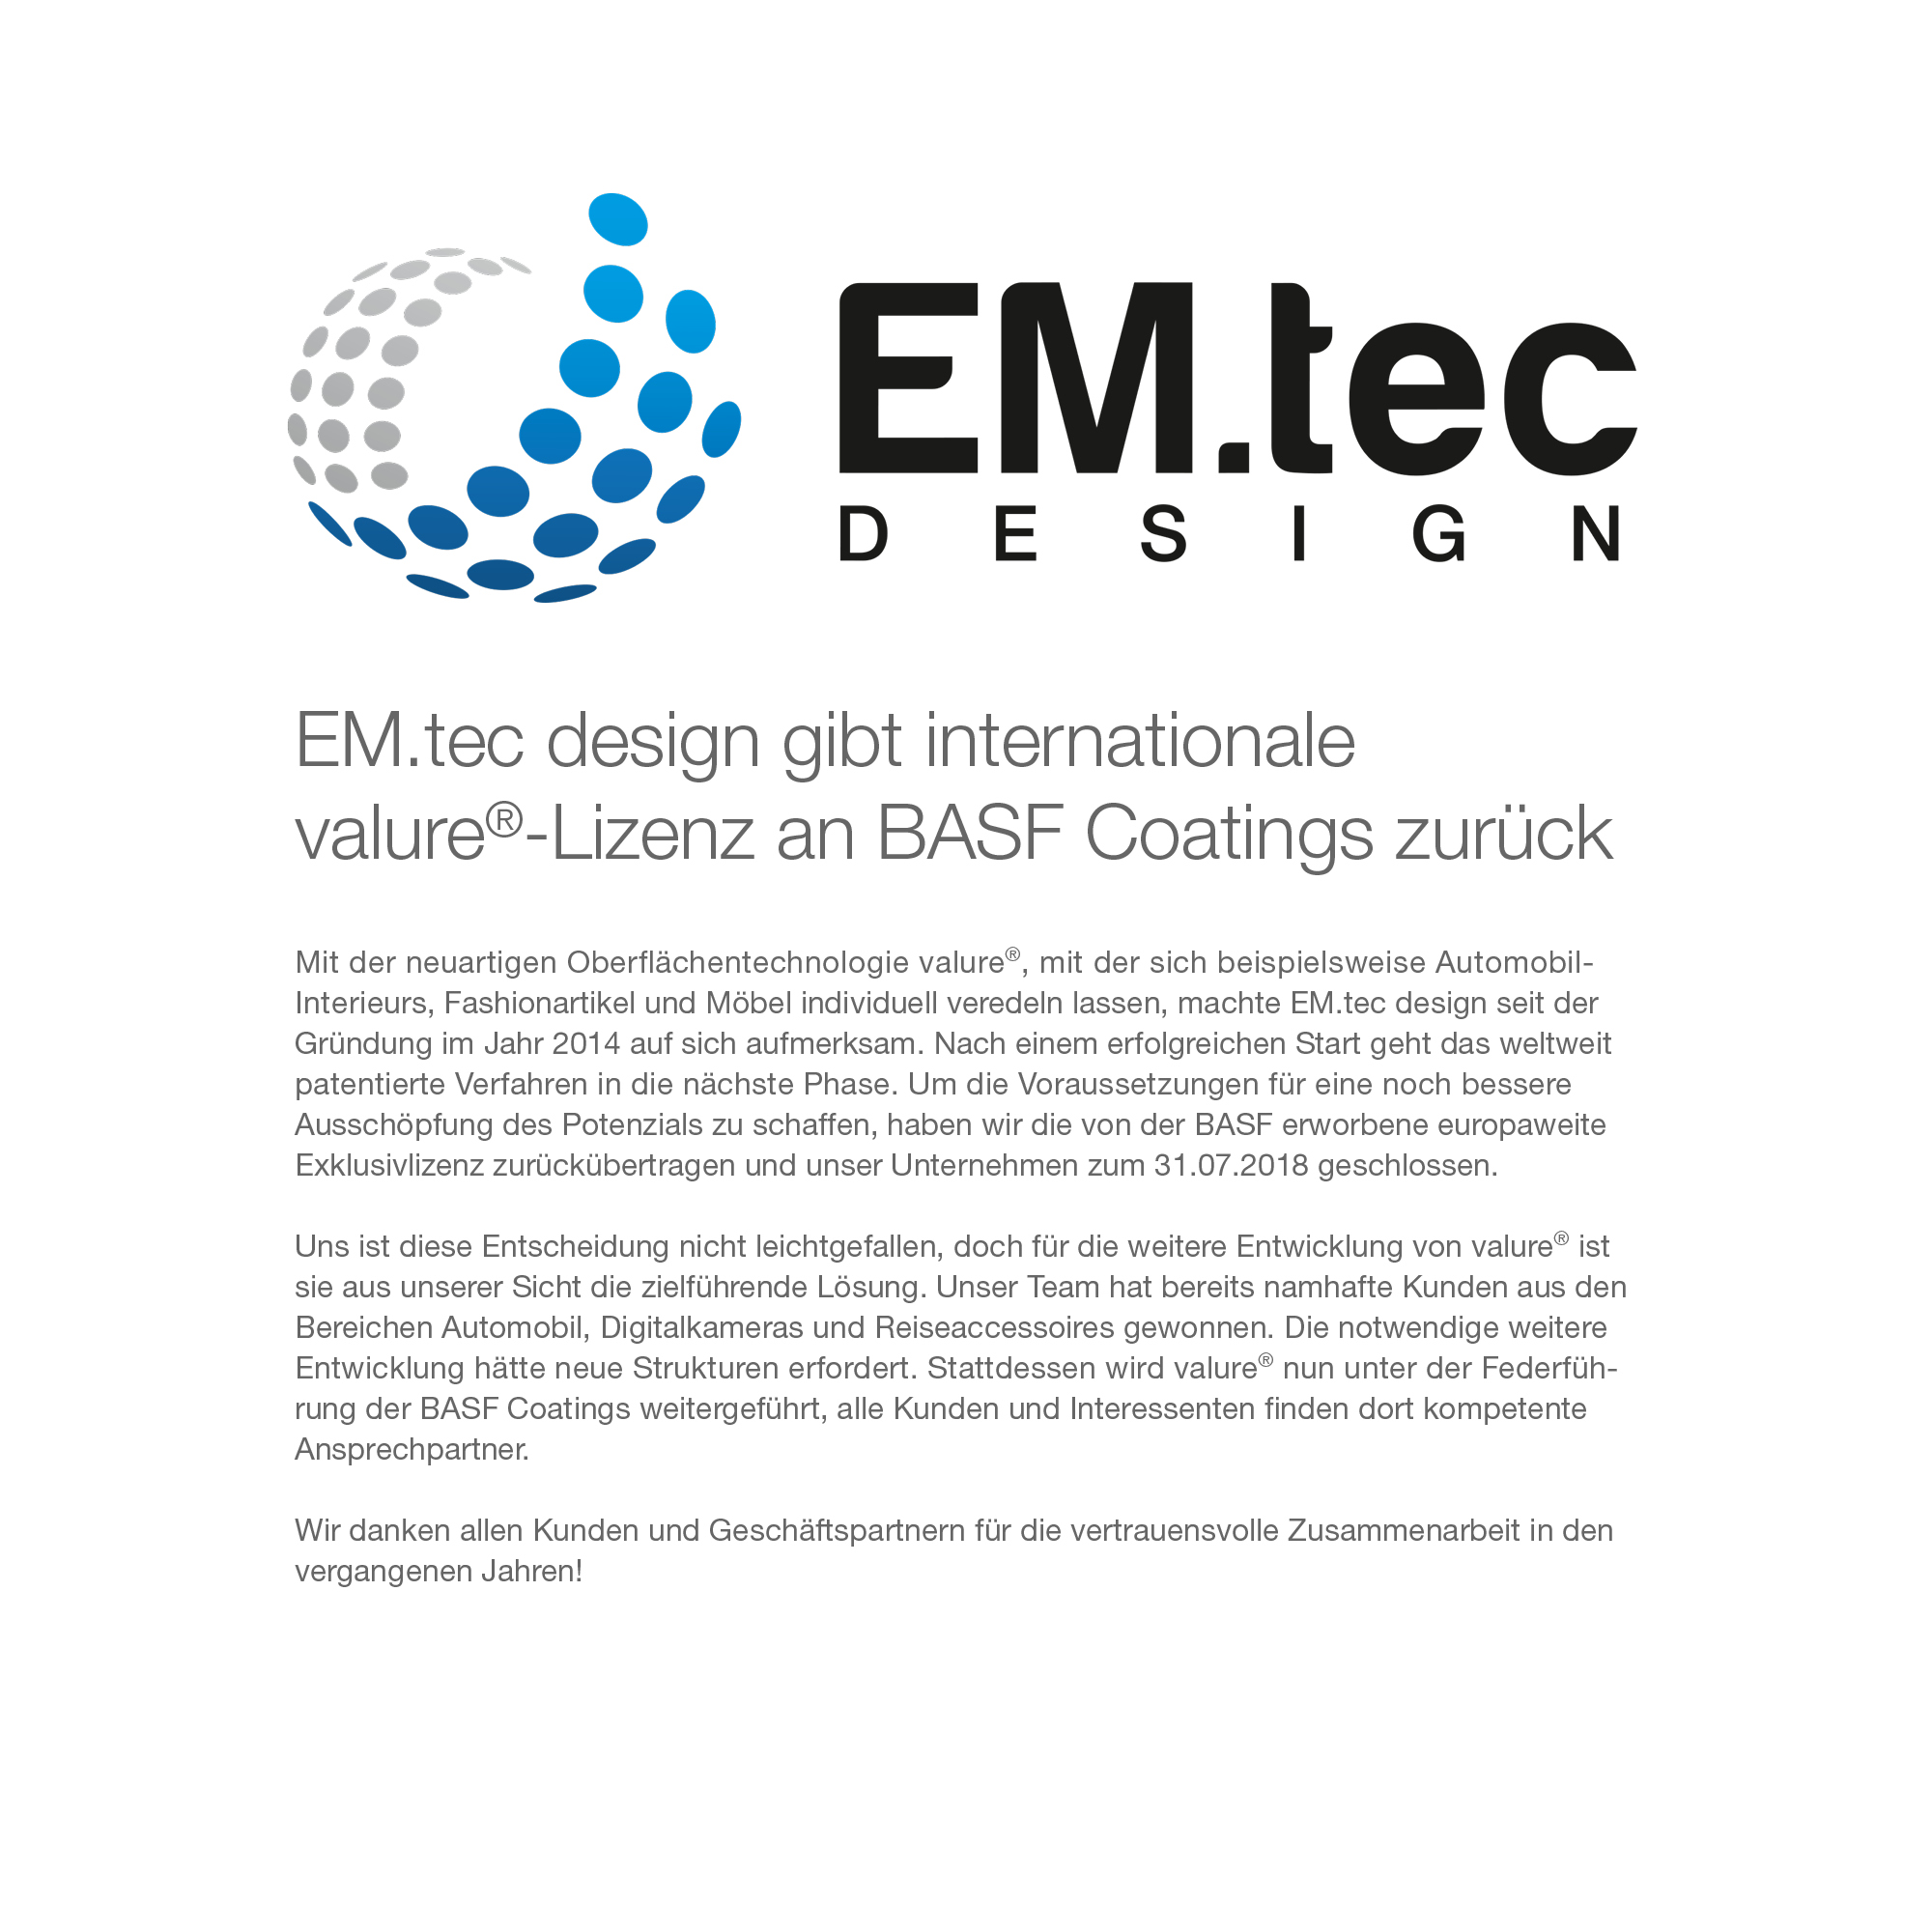 EM.tec design gibt internationale valure®-Lizenz an BASF Coatings zurück.